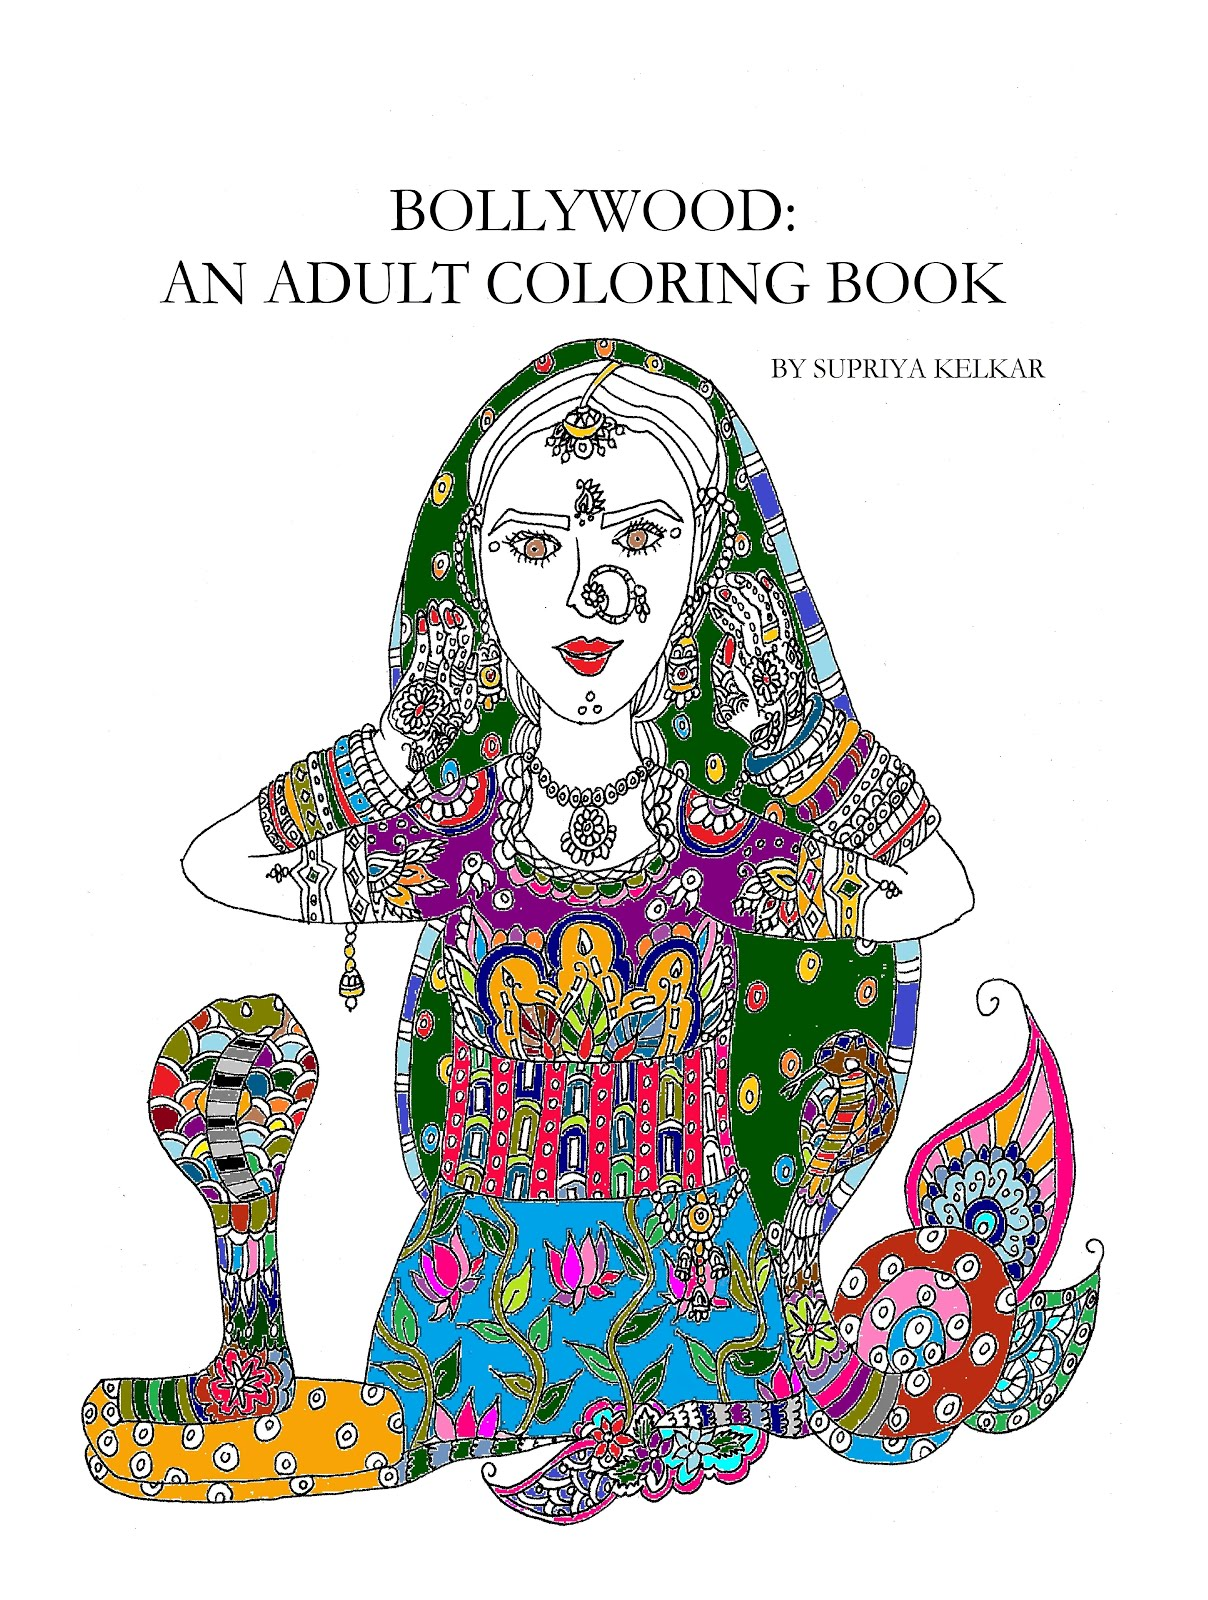 Bollywood: An Adult Coloring Book